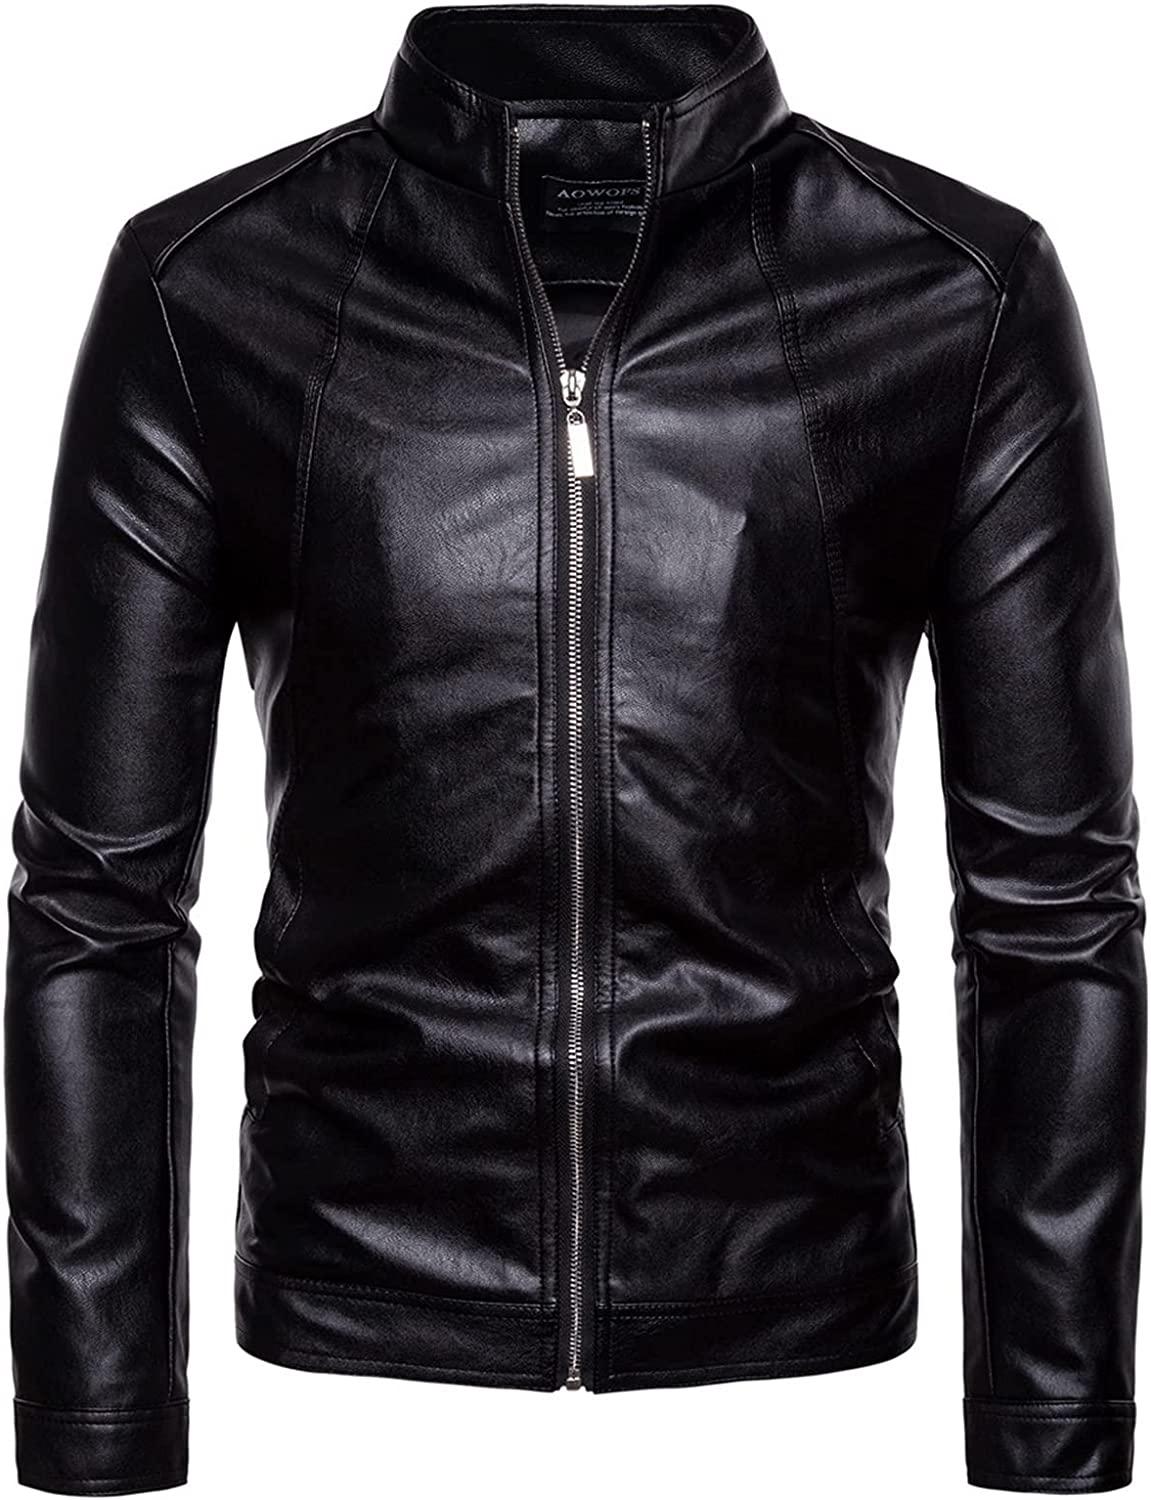 Men's Casual Faux Leather Jackets,Stand-Up Collar Sportsman Motorcycle Leather Jacket,Casual Fashion Outer Coat